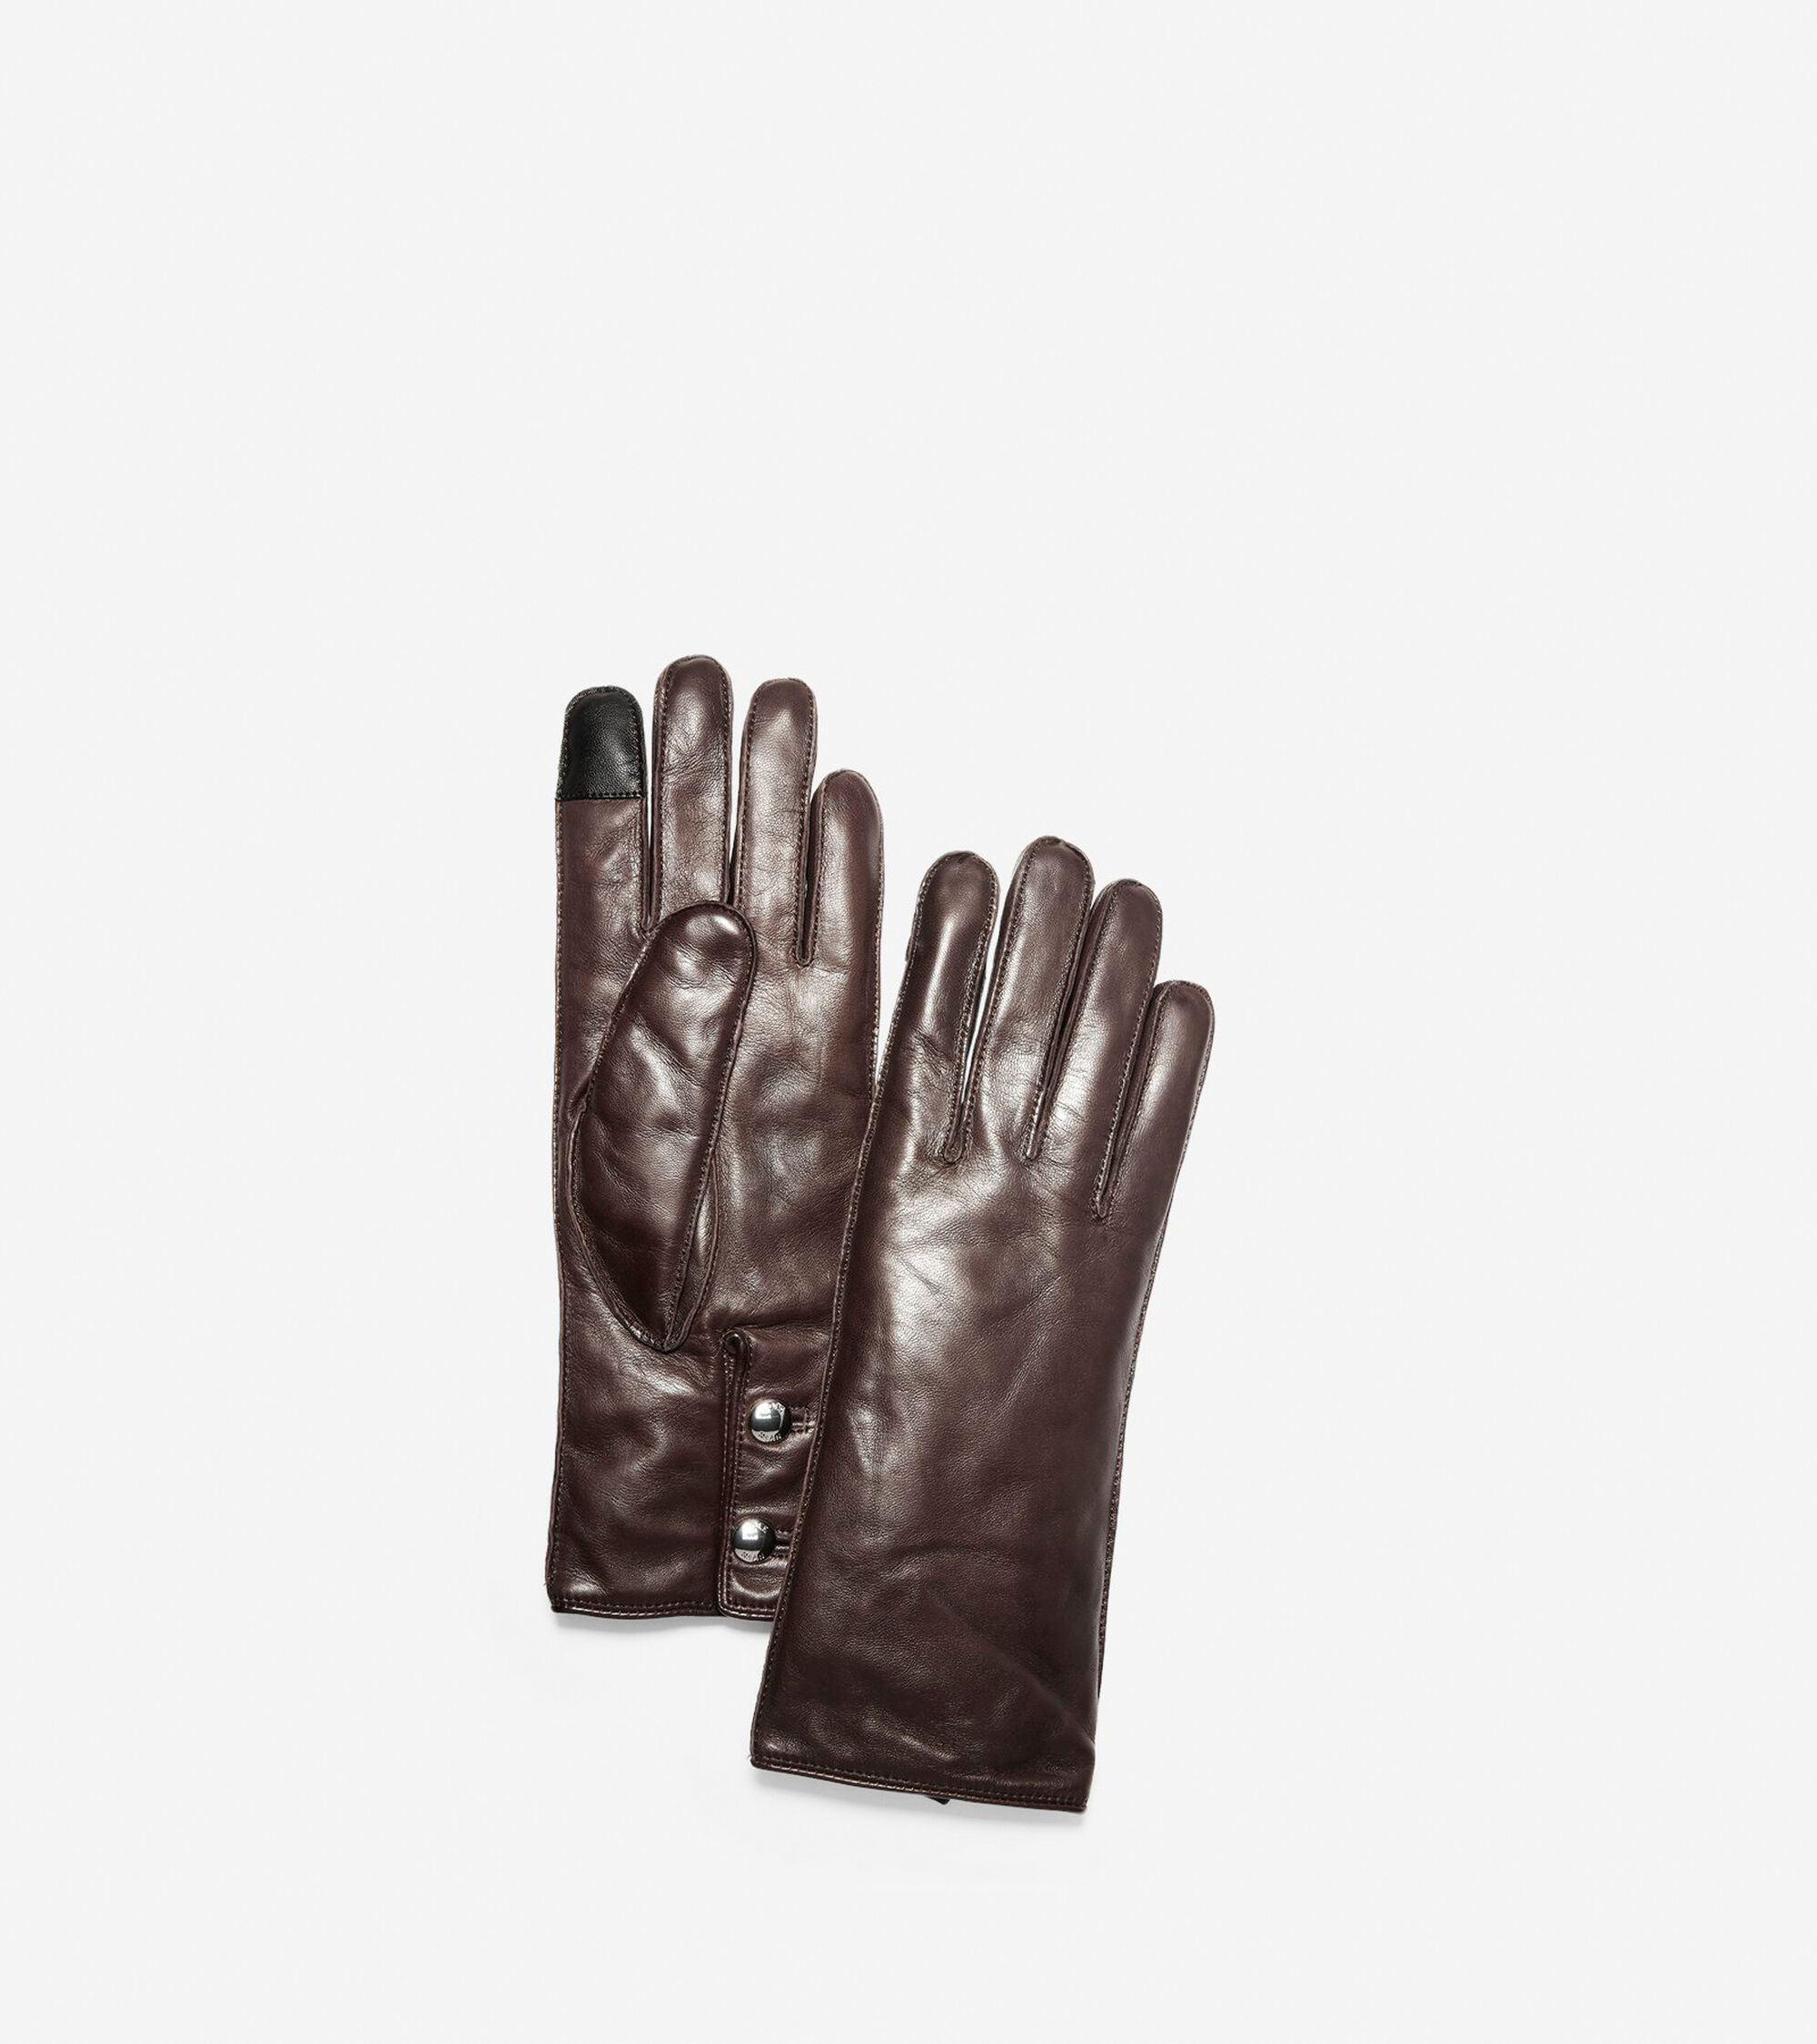 71786595e52 Cole Haan Lambskin Braided Leather Gloves - The Best Quality Gloves